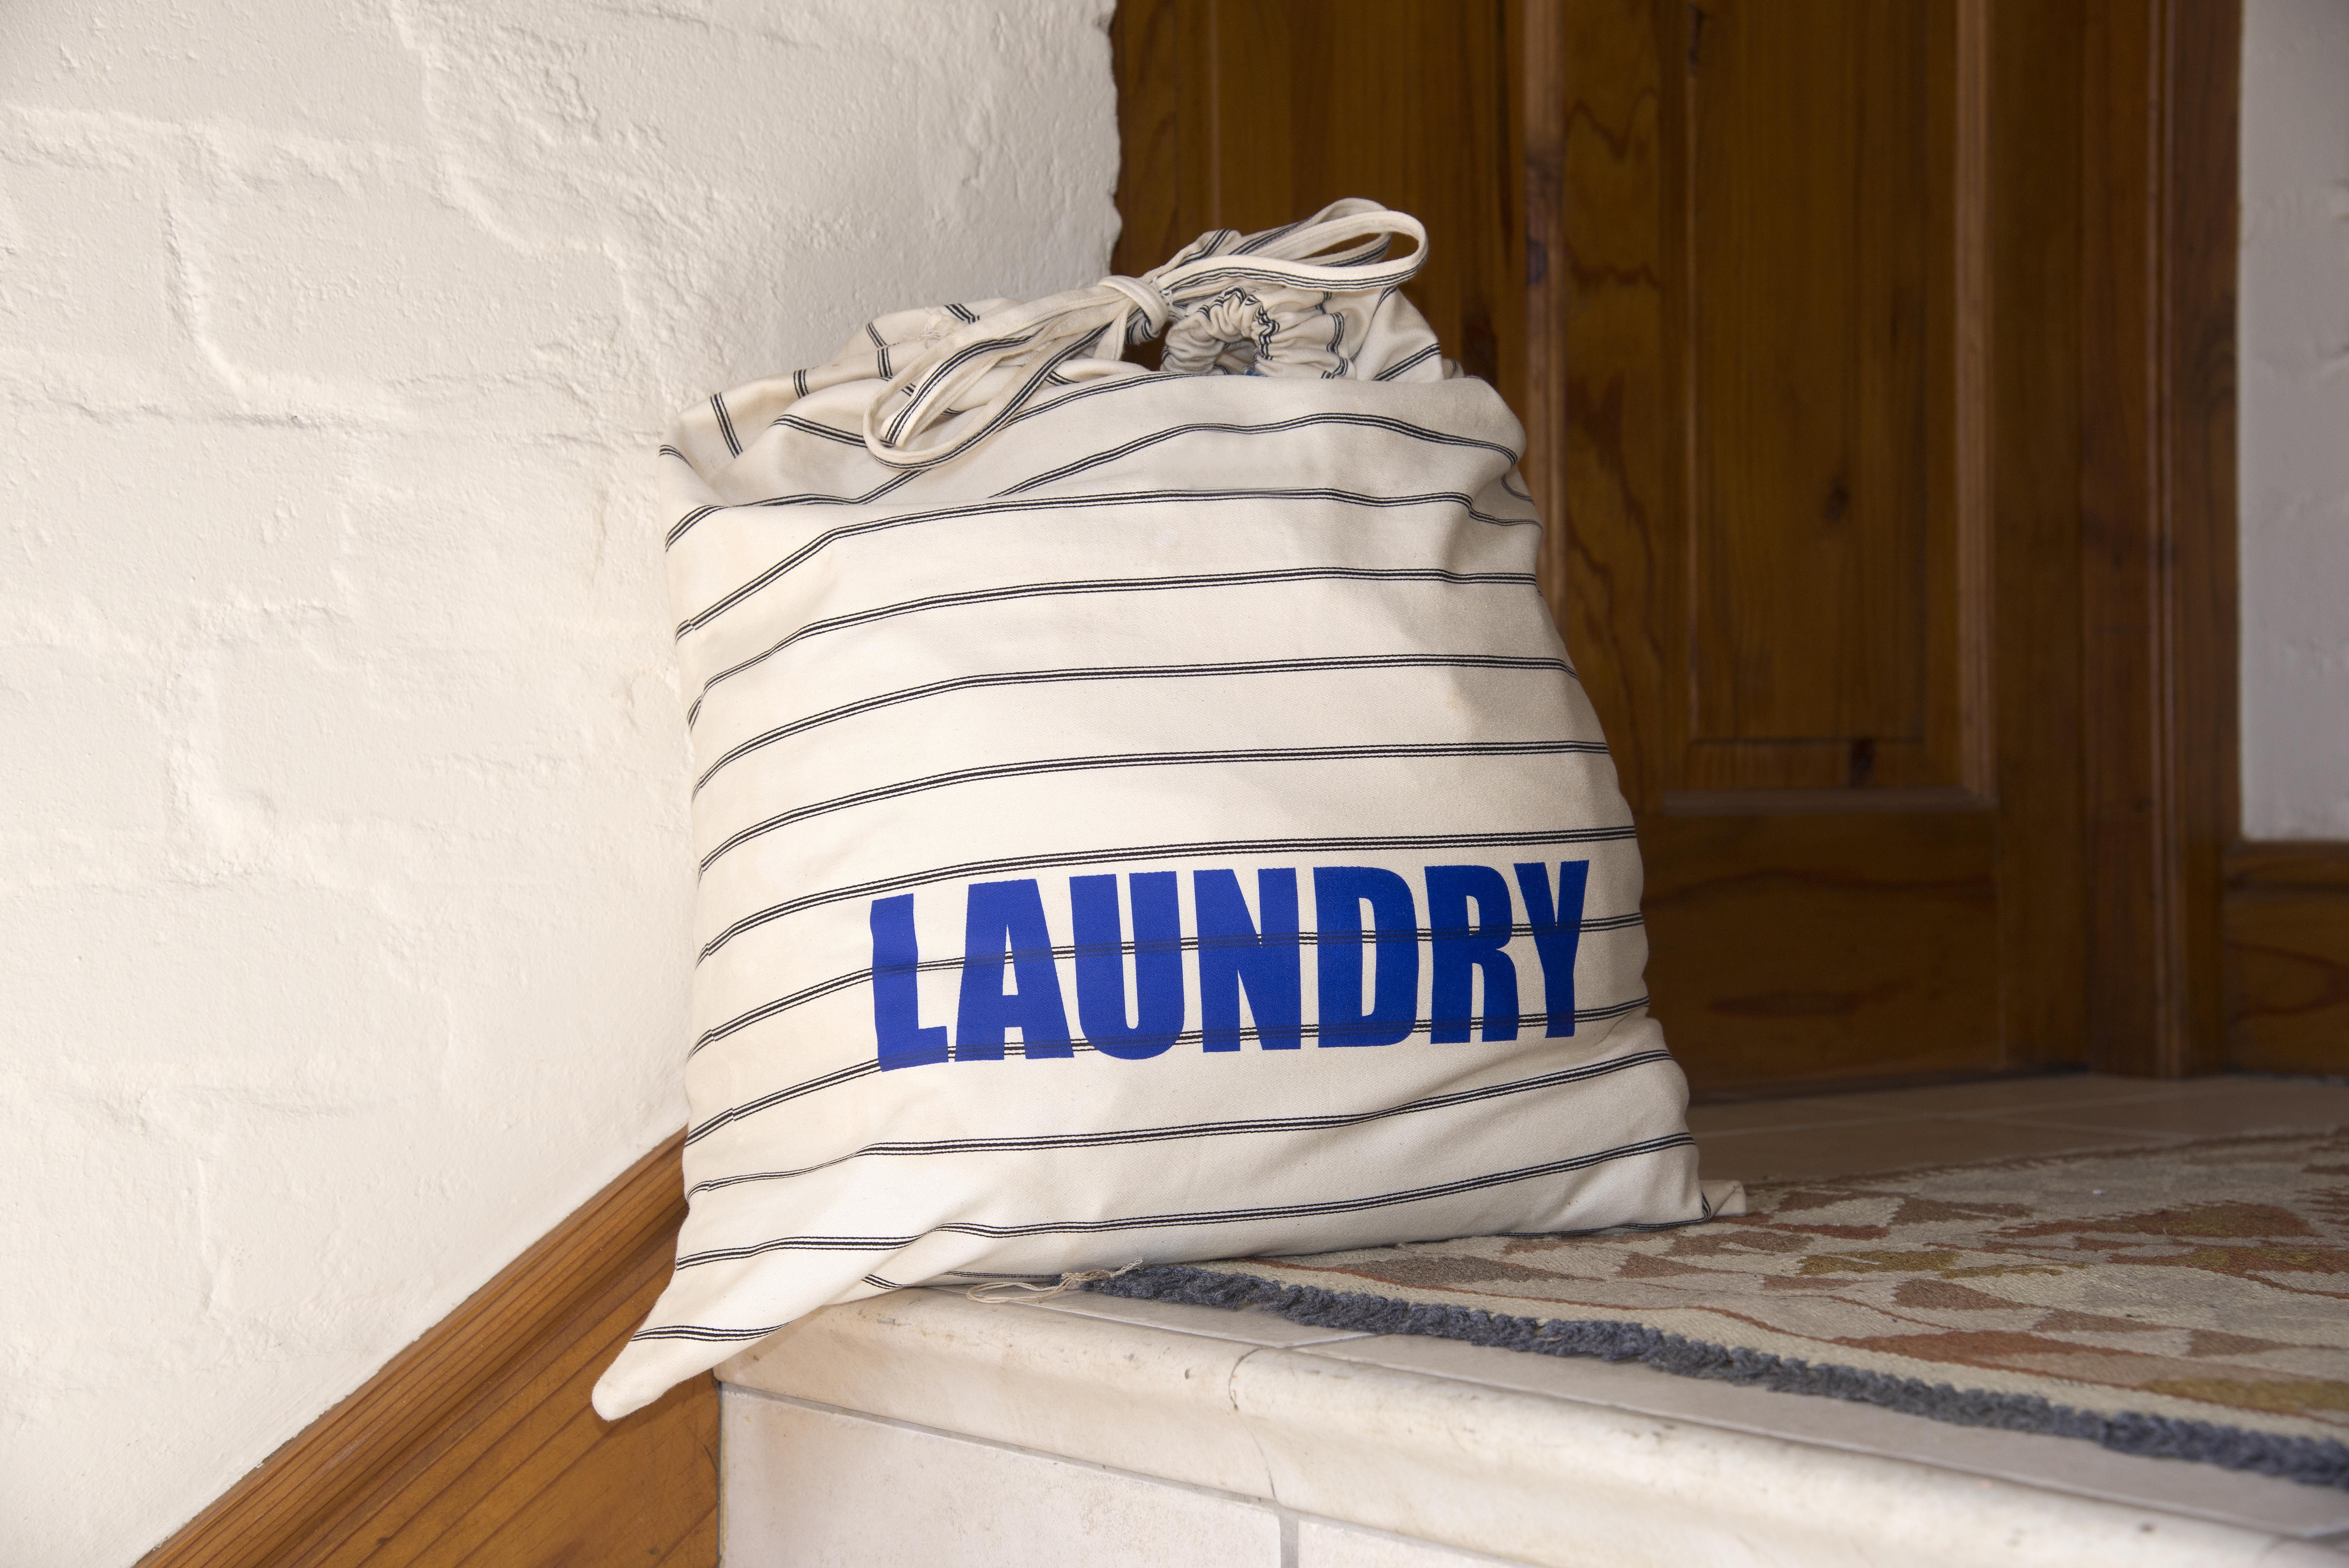 Pick & drop off laundry at Hereford by Priory Dry Cleaners